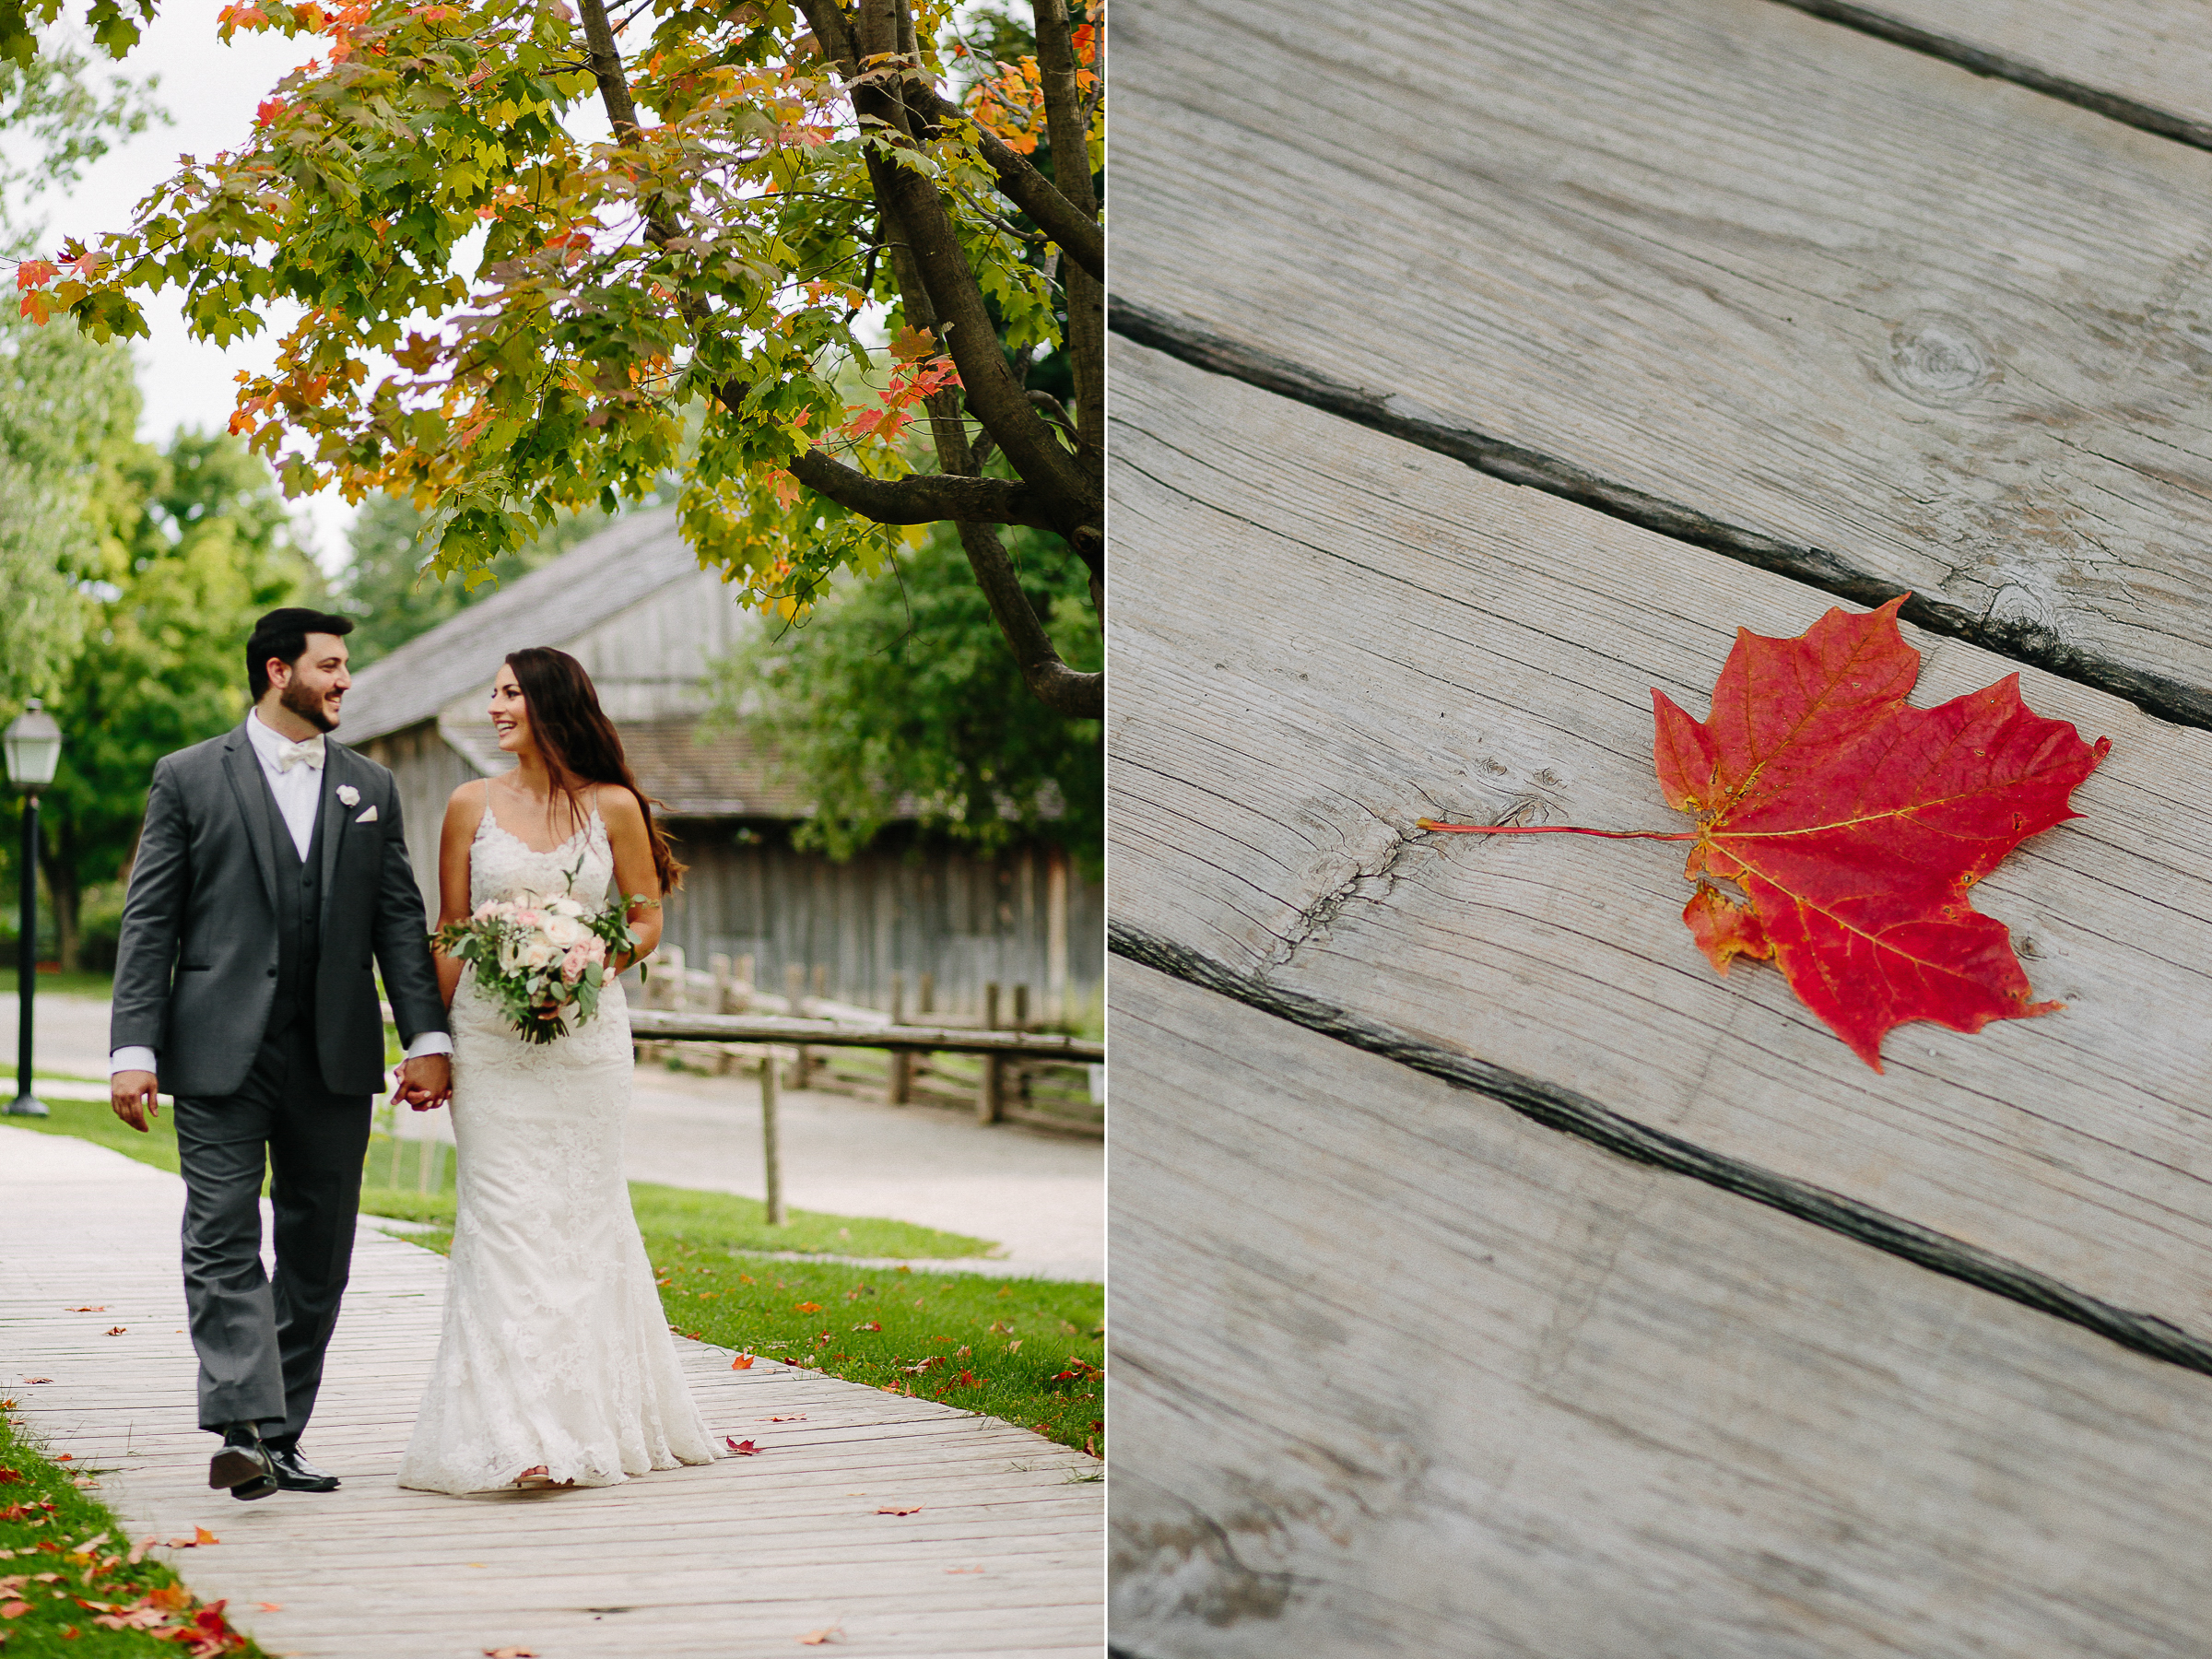 Dragana_Wedding_Photography_Toronto_Black_Creek-53.jpg